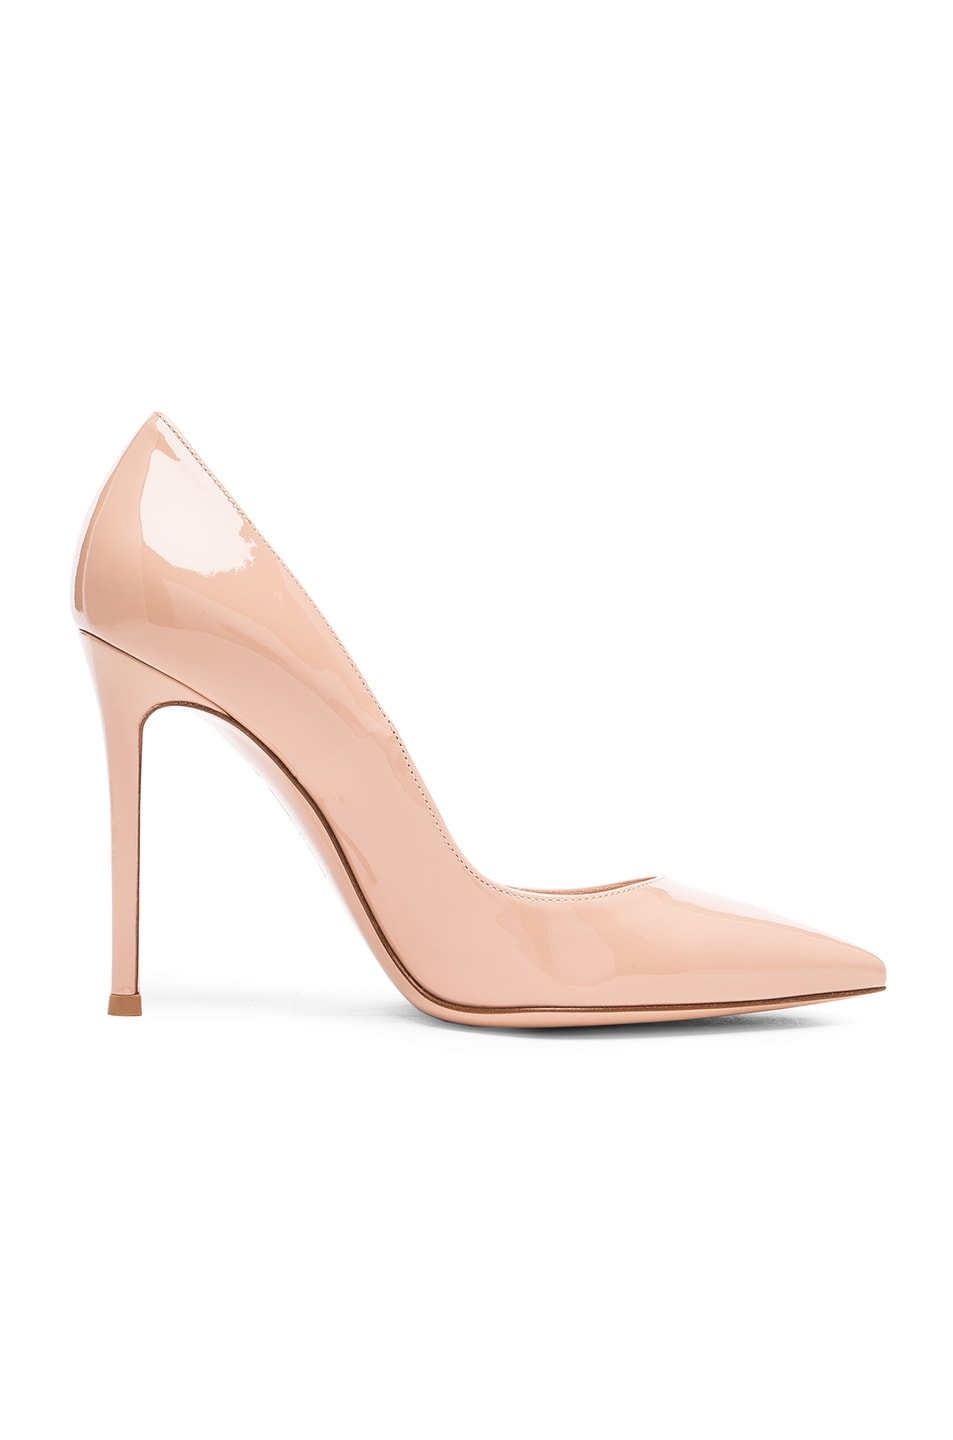 Image 1 of Gianvito Rossi Patent Leather Gianvito Pumps in Nude